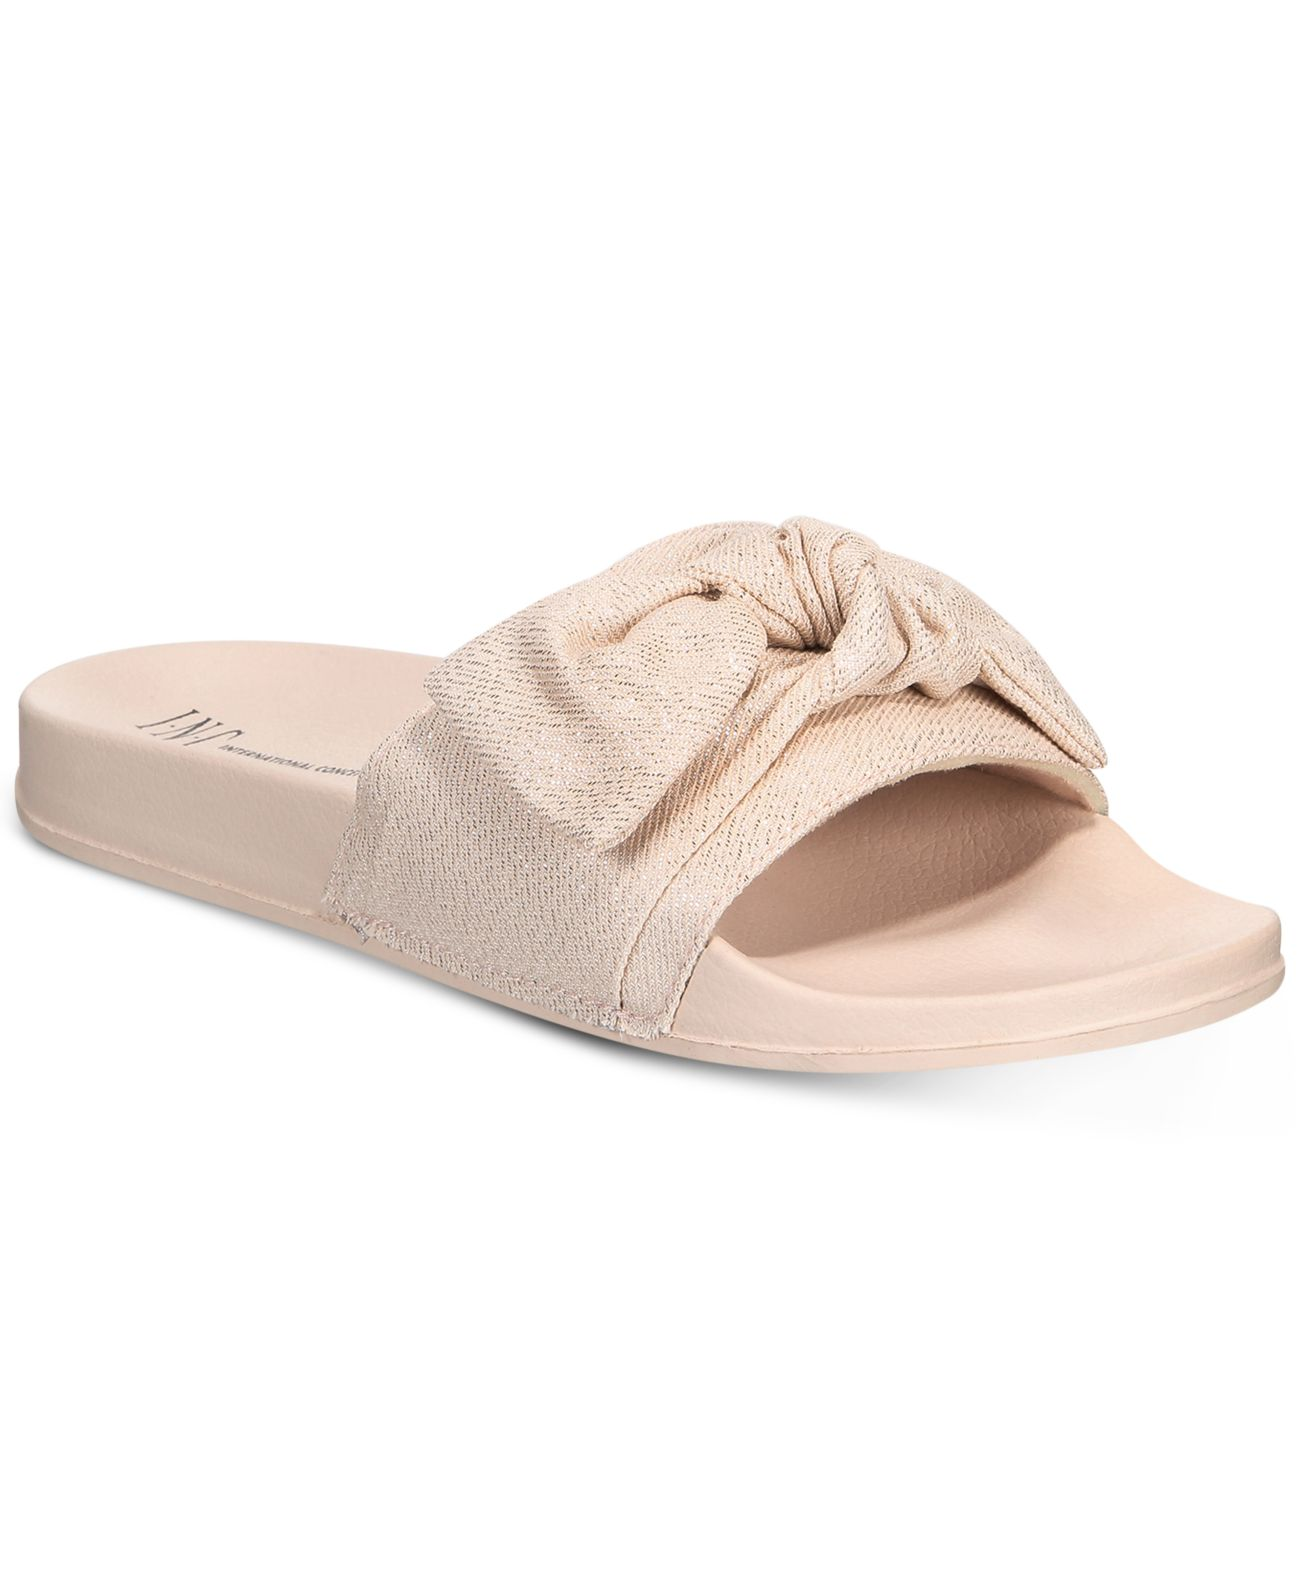 INC International Concepts Women's Knotted Slide Slippers